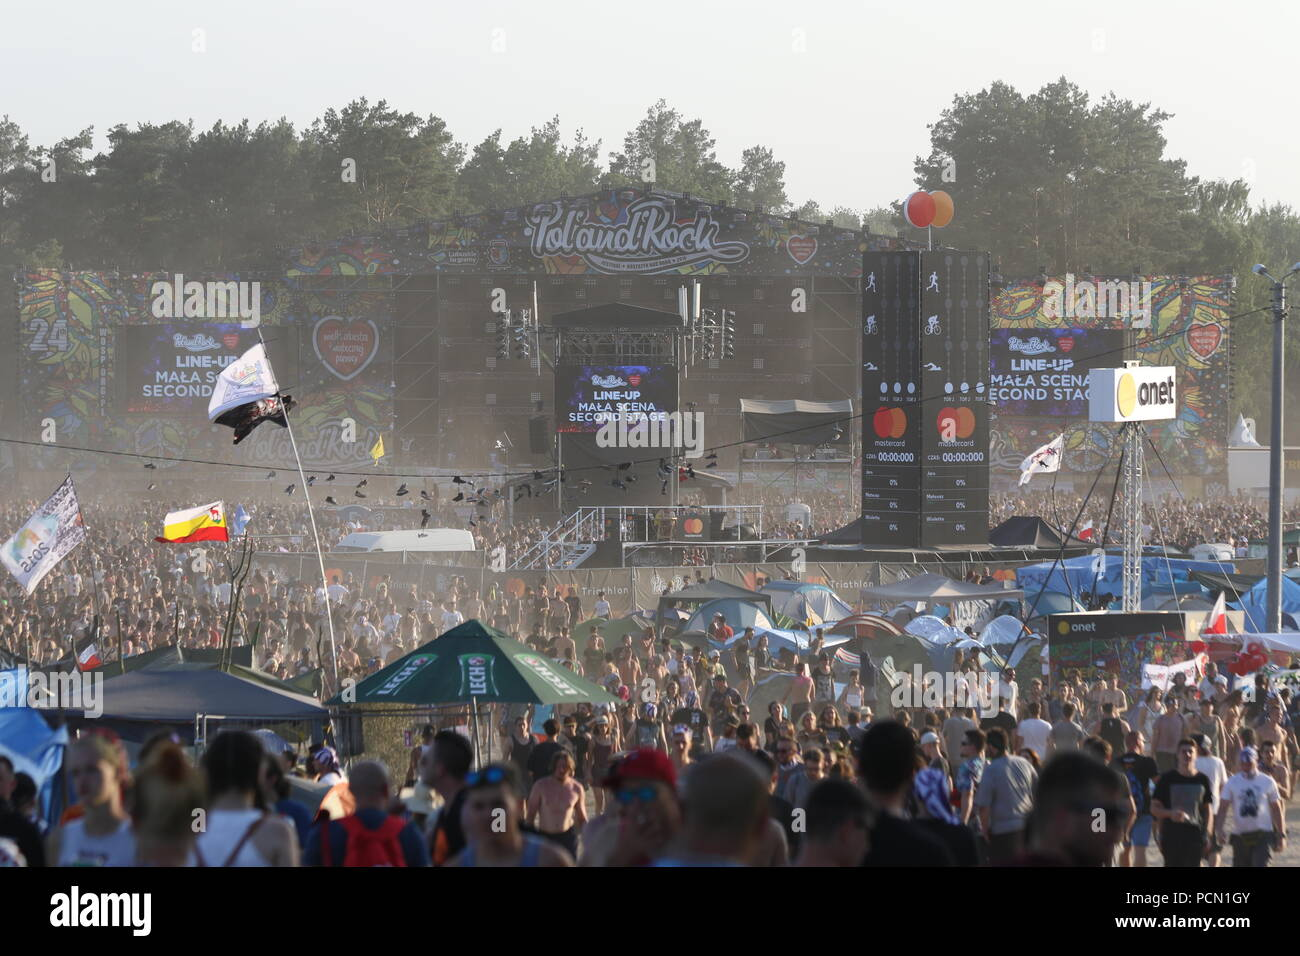 Kostrzyn, Polen, 3 August 2018,  24. Pol'and'Rock Festival is the biggest non-commercial festival in Europe. This year the festival will take place on 2-4 August in the town of Kostrzyn nad Odra in western Poland. Credit: SAO Struck/Alamy Live News - Stock Image